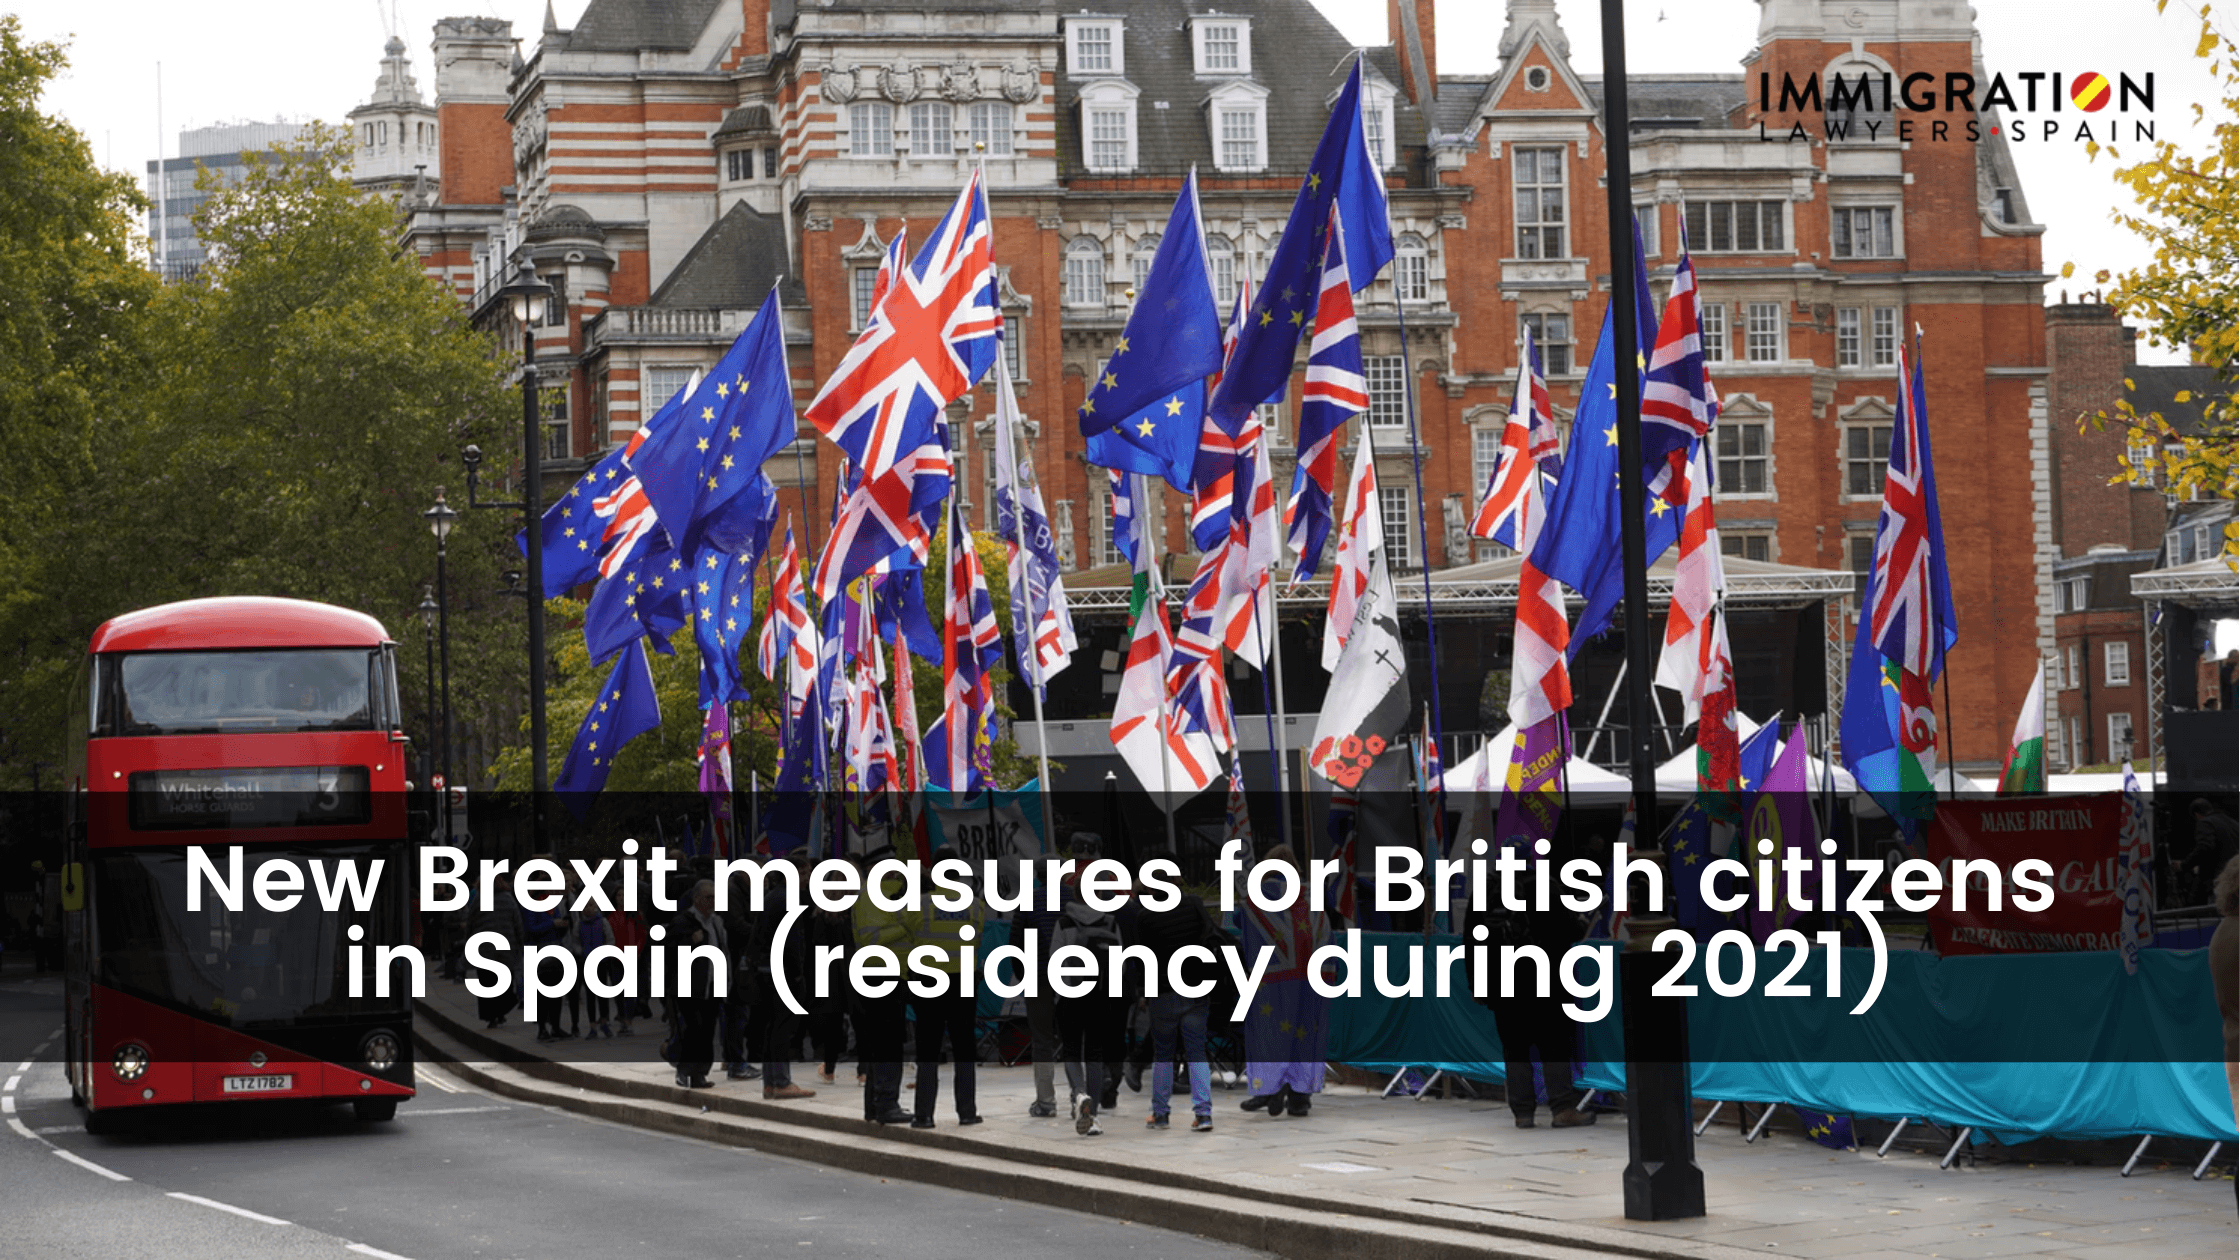 new Brexit measures in Spain for 2021